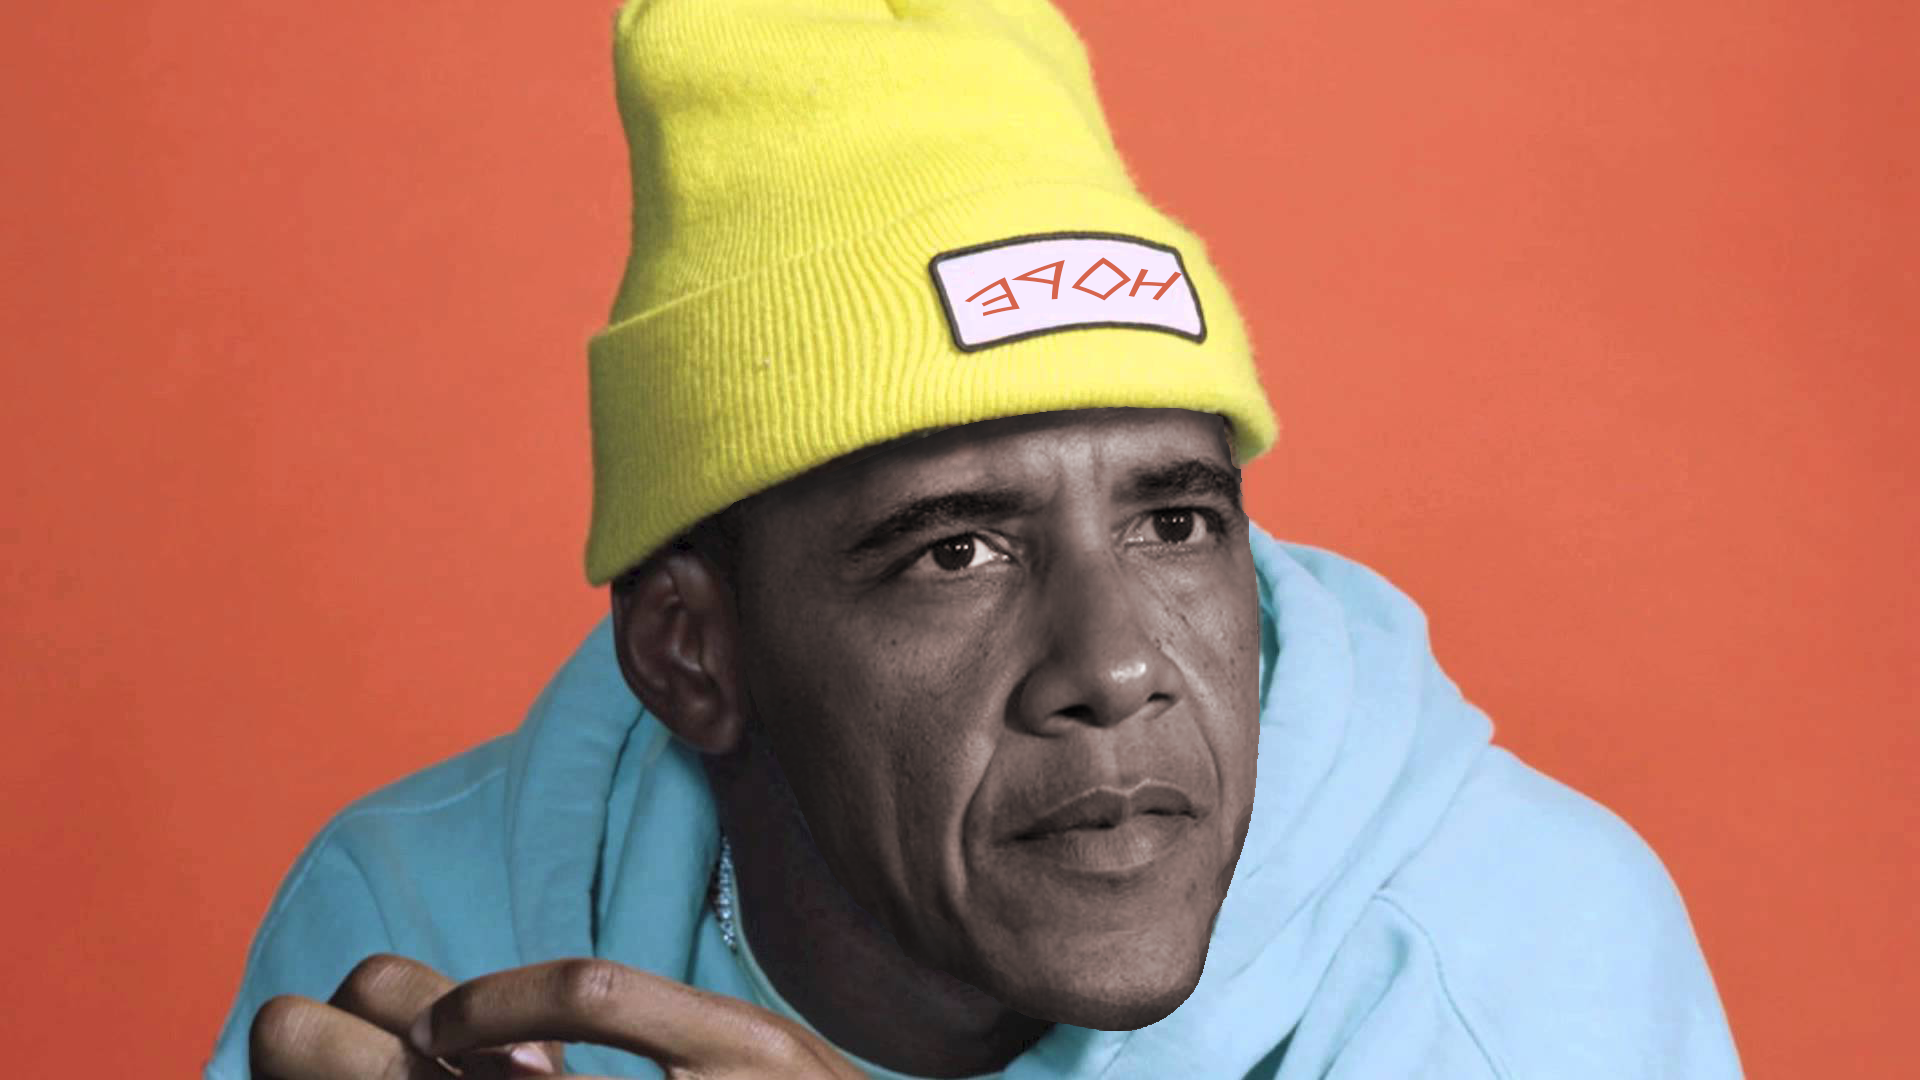 Obama The Creator (With images) Tyler the creator